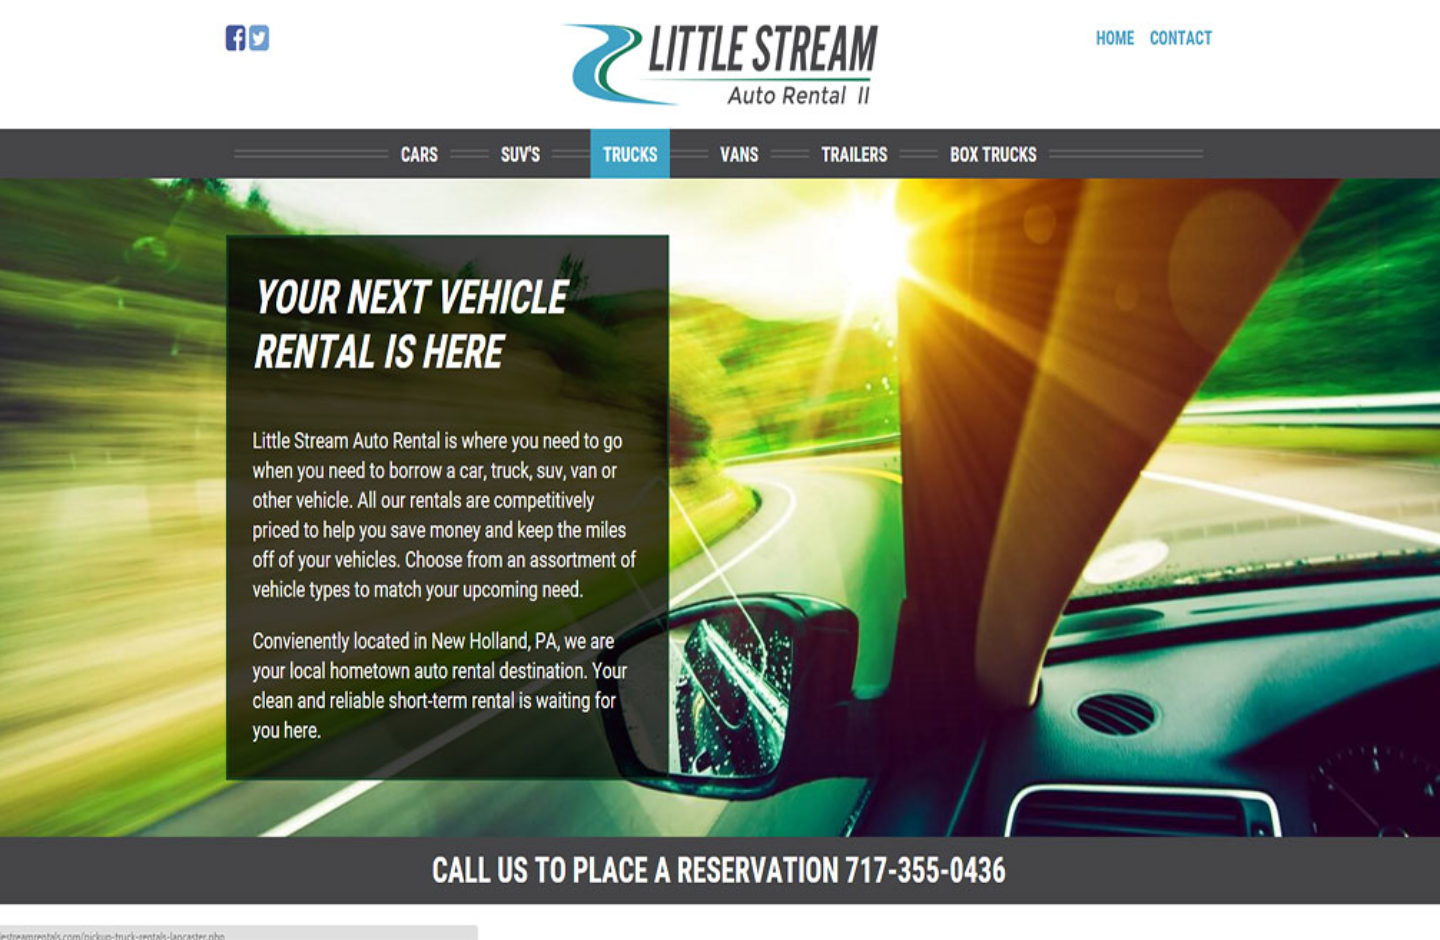 Little Stream Auto Rental